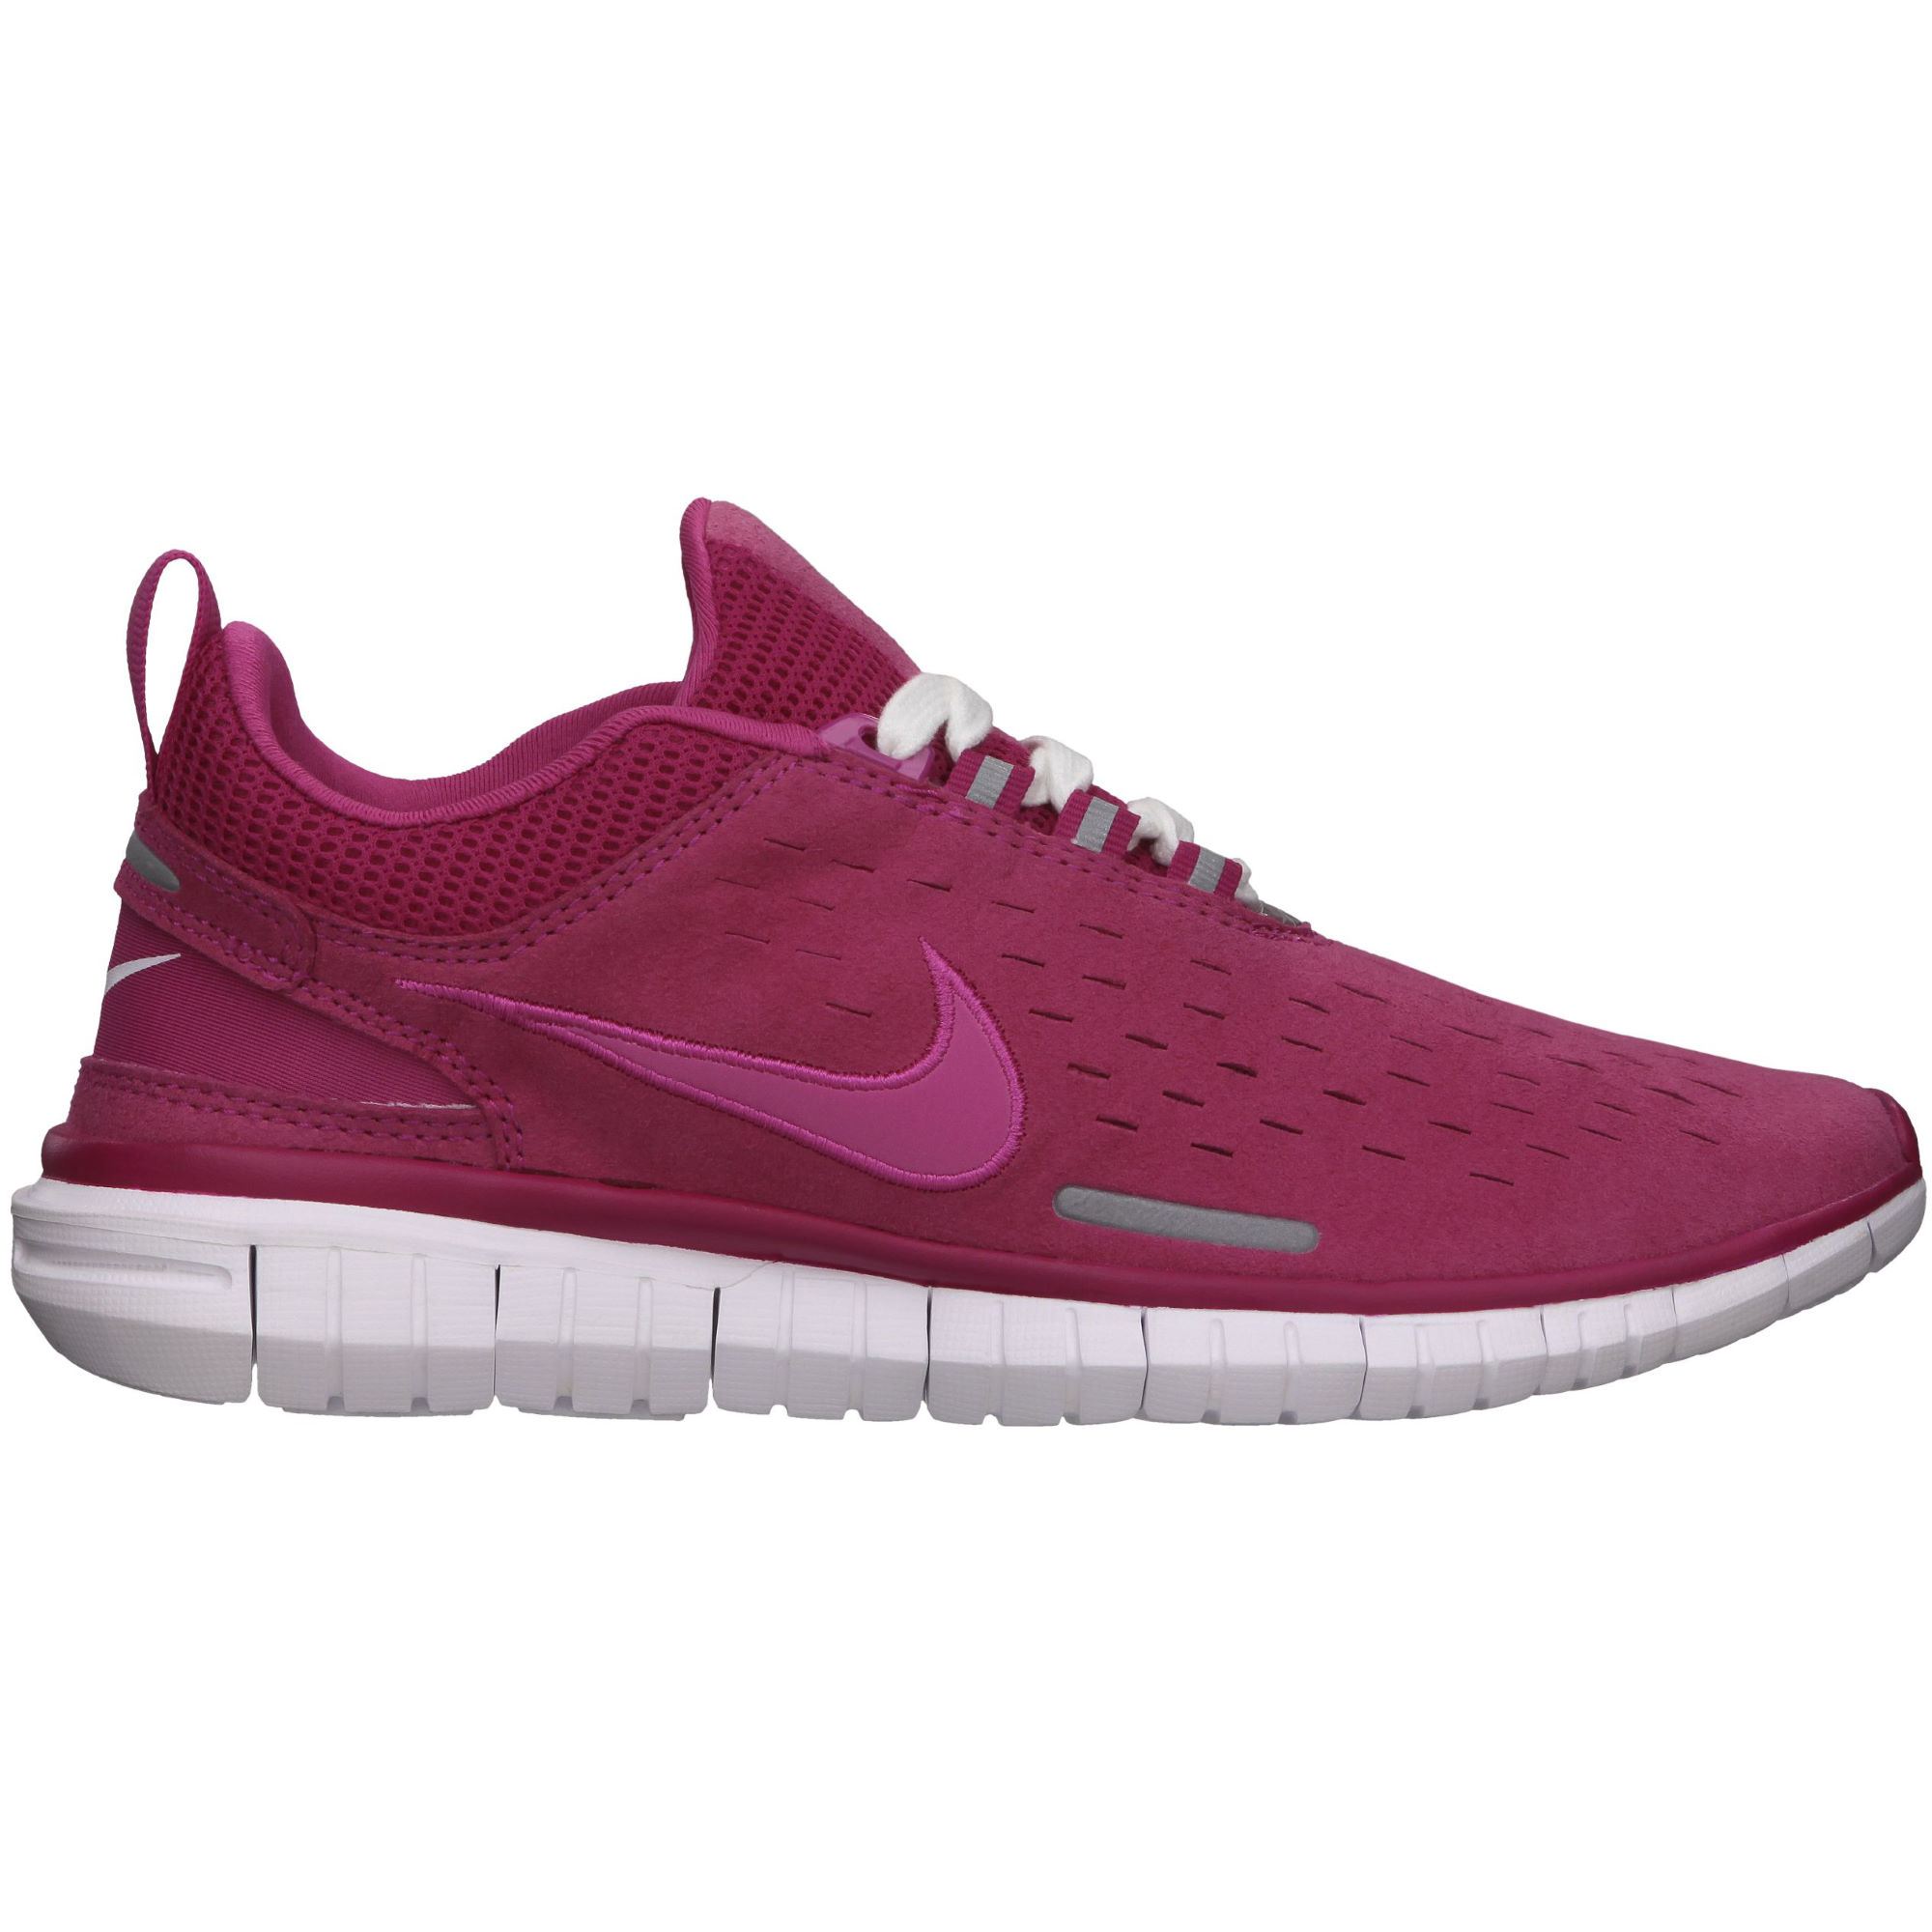 best running sneakers for women See the 10 best spring running sneakers here. New Balance Women's Fresh Foam Running Shoe, 9. 10 of the Best Running Shoes for Women. Lacing up with best running sneaker women the right sneakers can make all the difference.